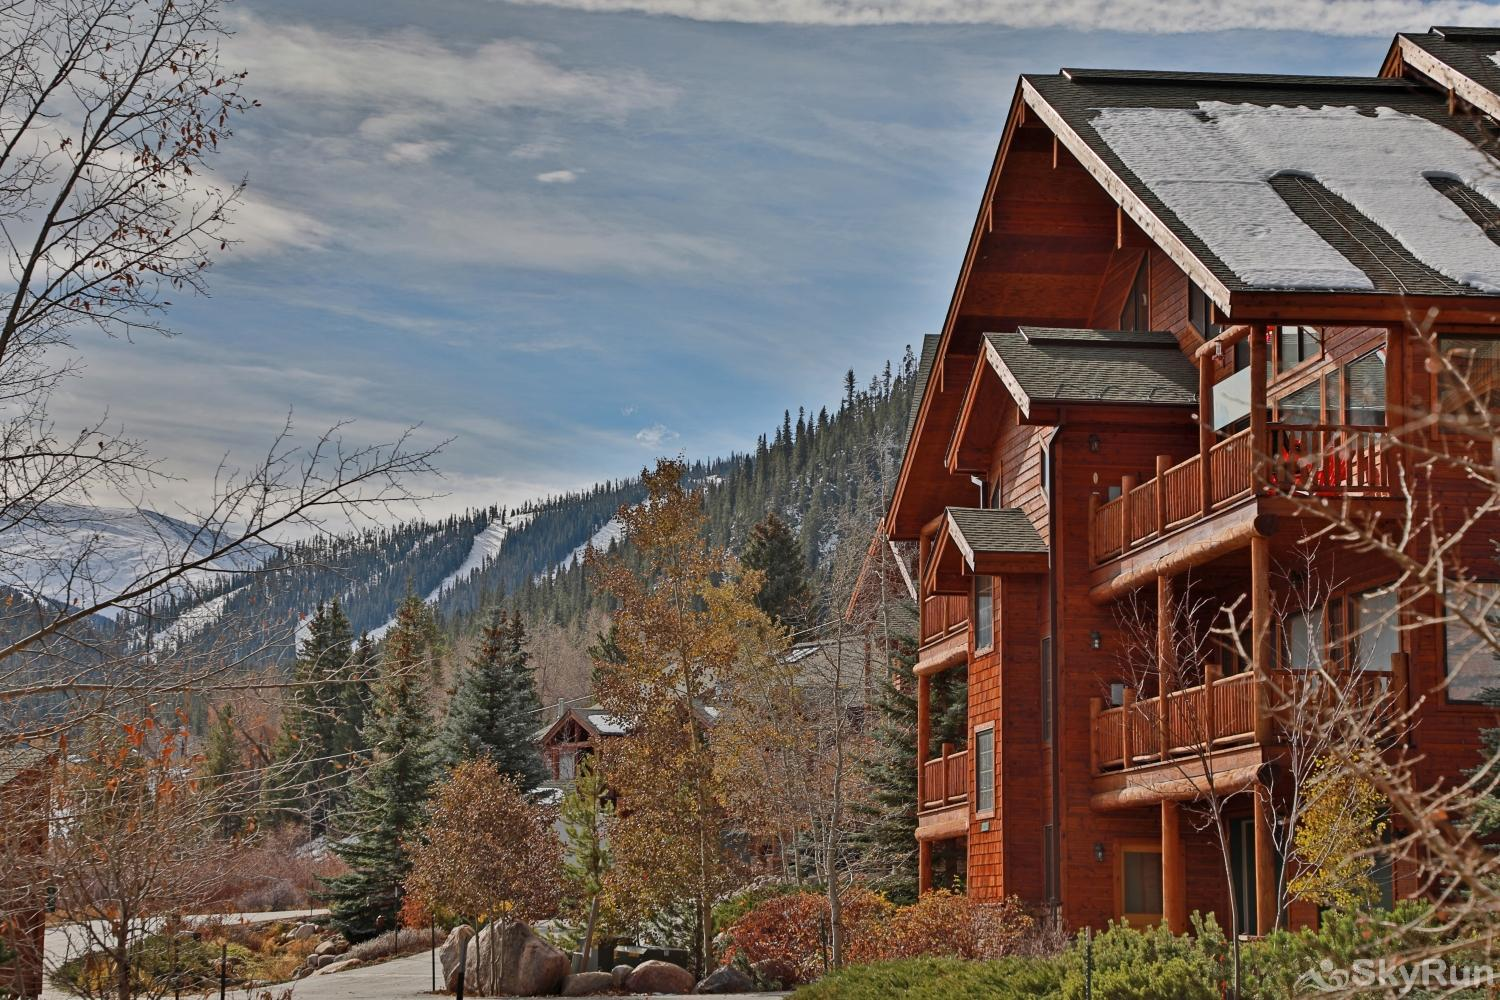 Slopeside Condo 97 Clover Lane 5 Minute Walk to Lifts or Village